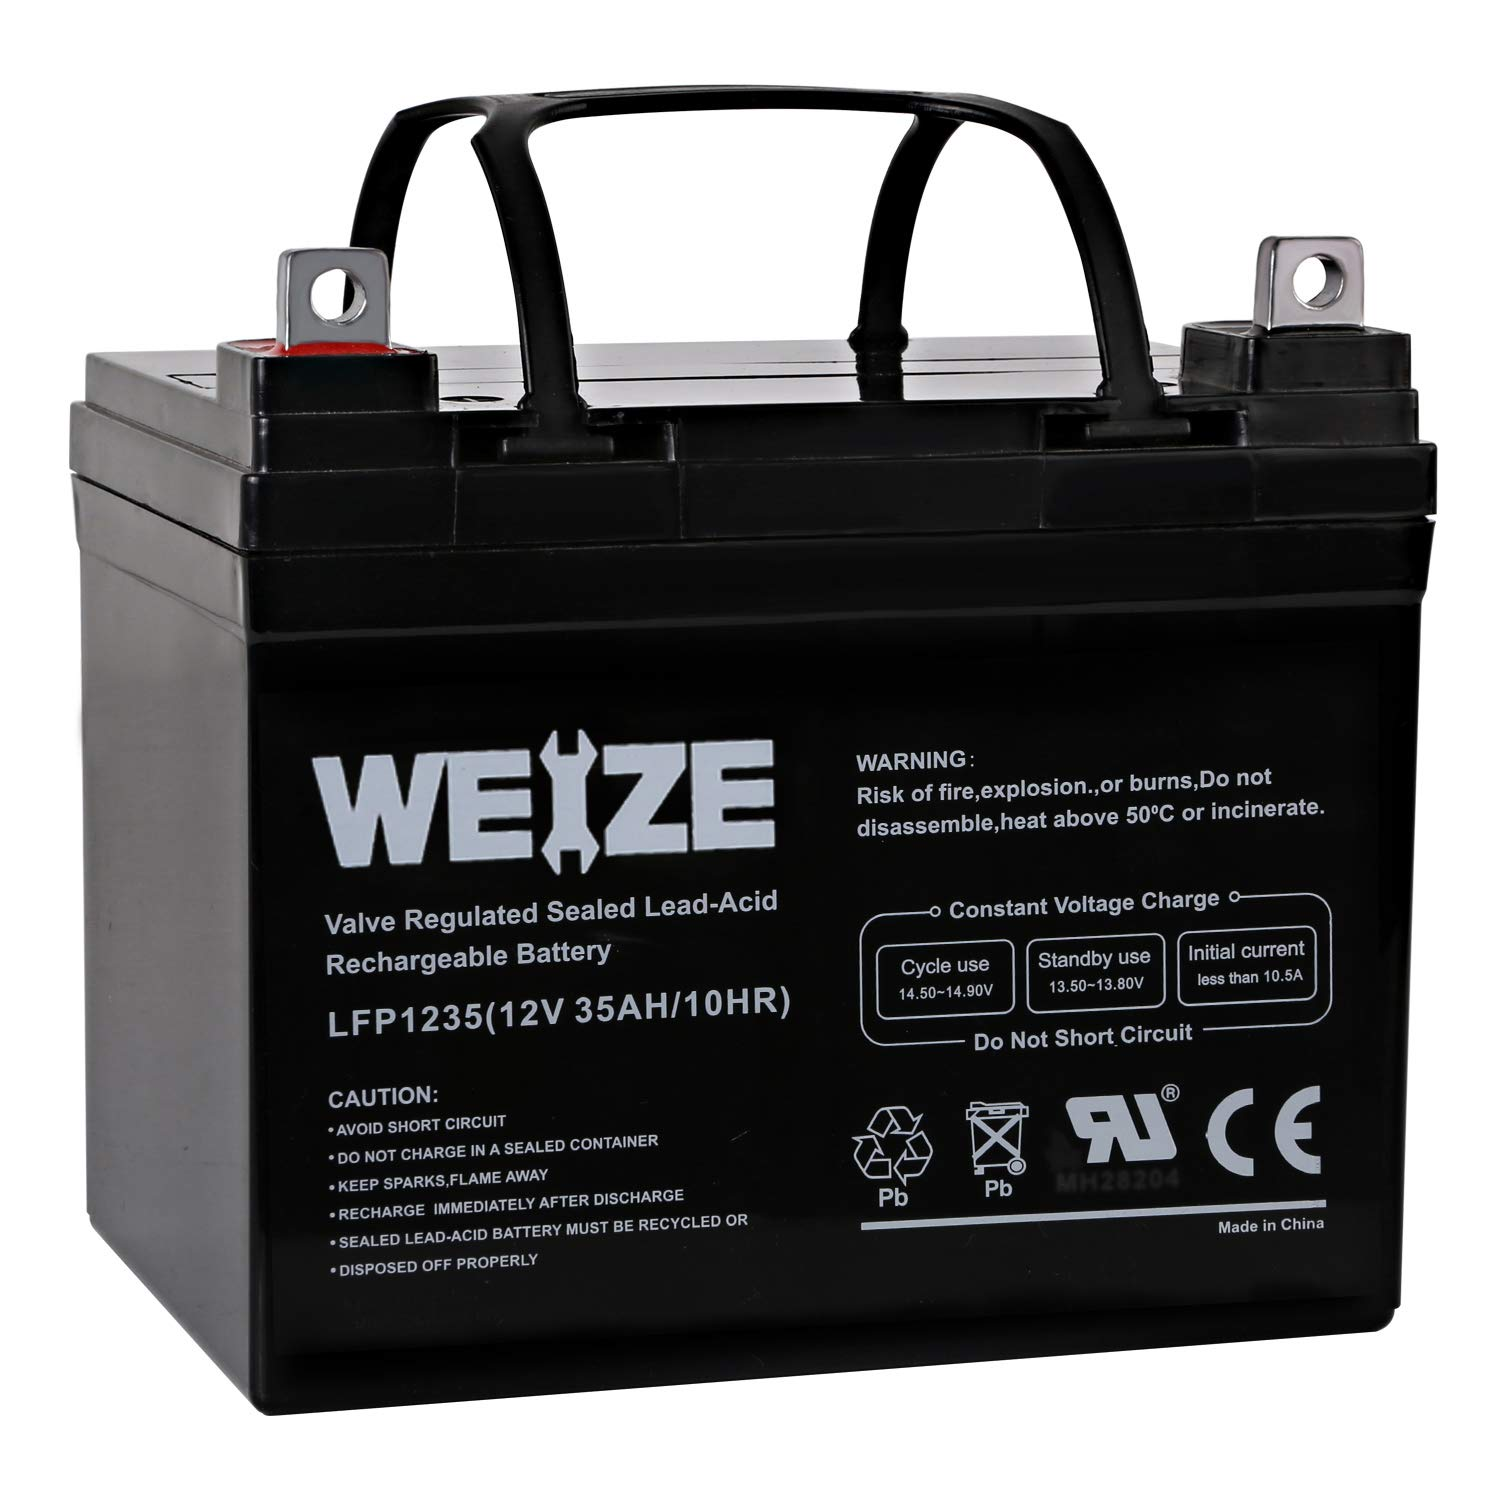 Weize 12V 35AH Rechargeable SLA Deep Cycle AGM Battery Replaces 12 Volt 33AH, 34AH, 36AH by WEIZE